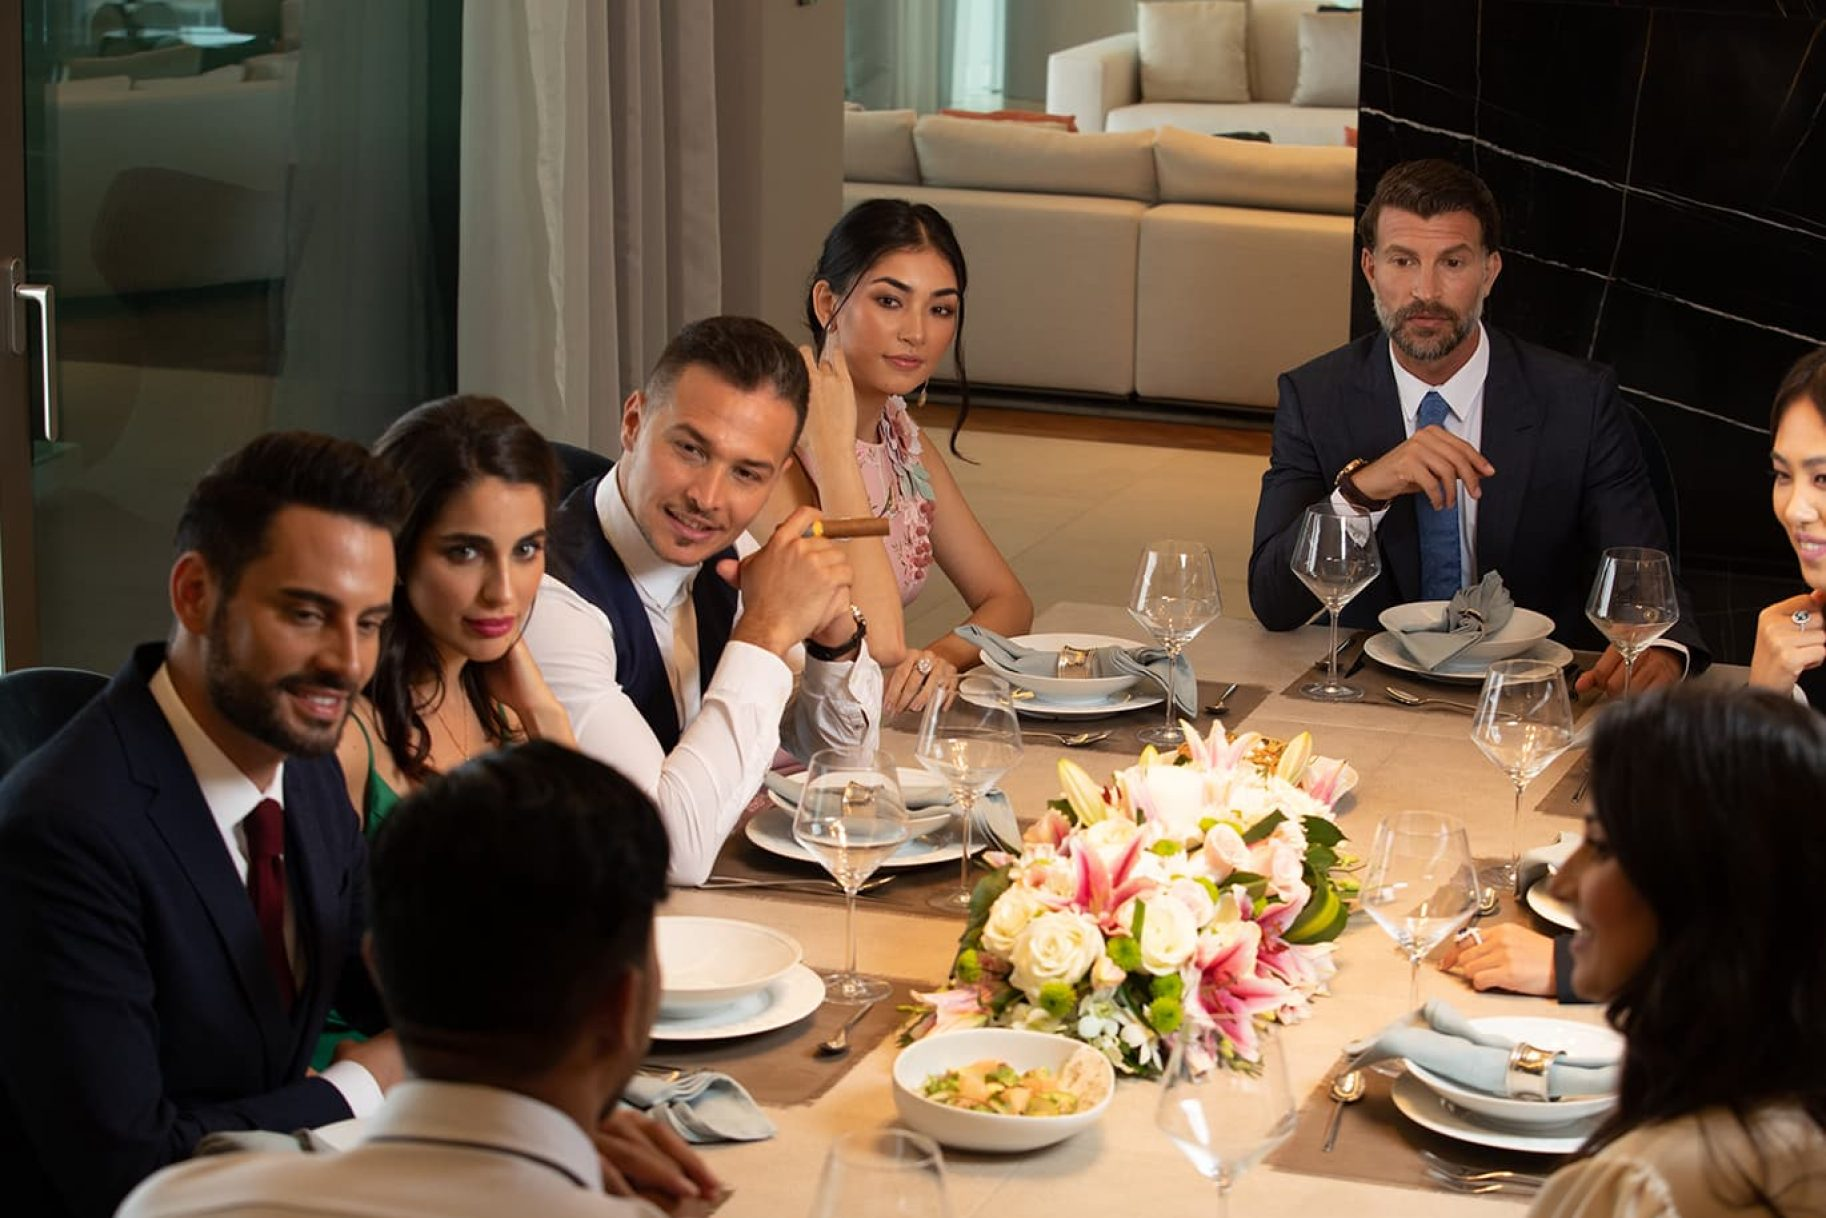 A dinner party within the luxurious surroundings of a W Residences apartment Dubai